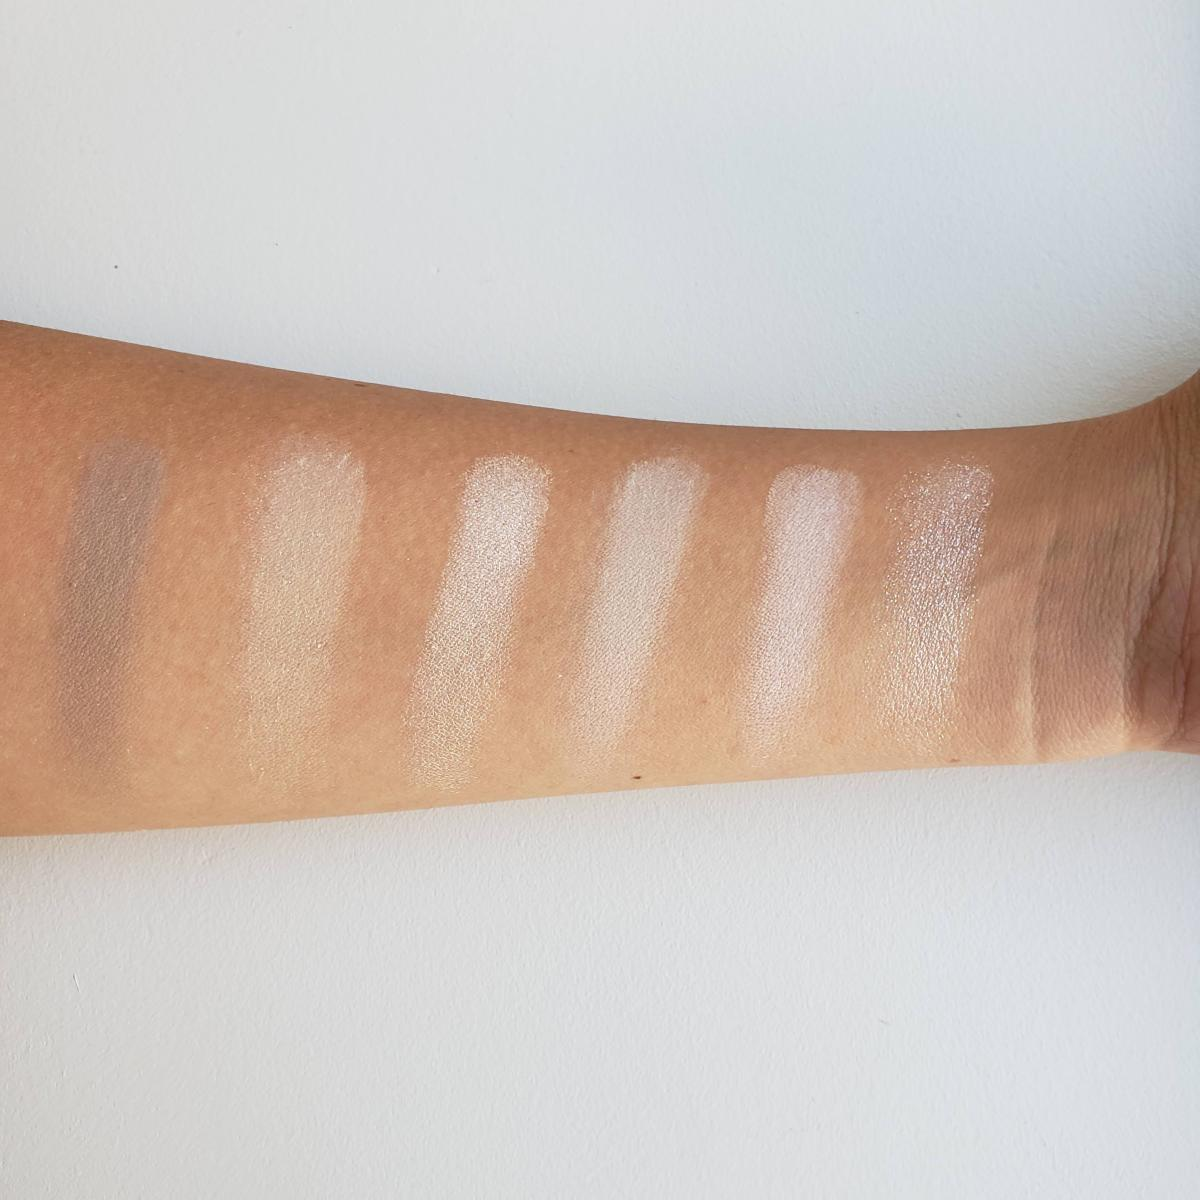 Jeffree Star Cosmetics Cremated Eyeshadow Palette Review Swatches 4